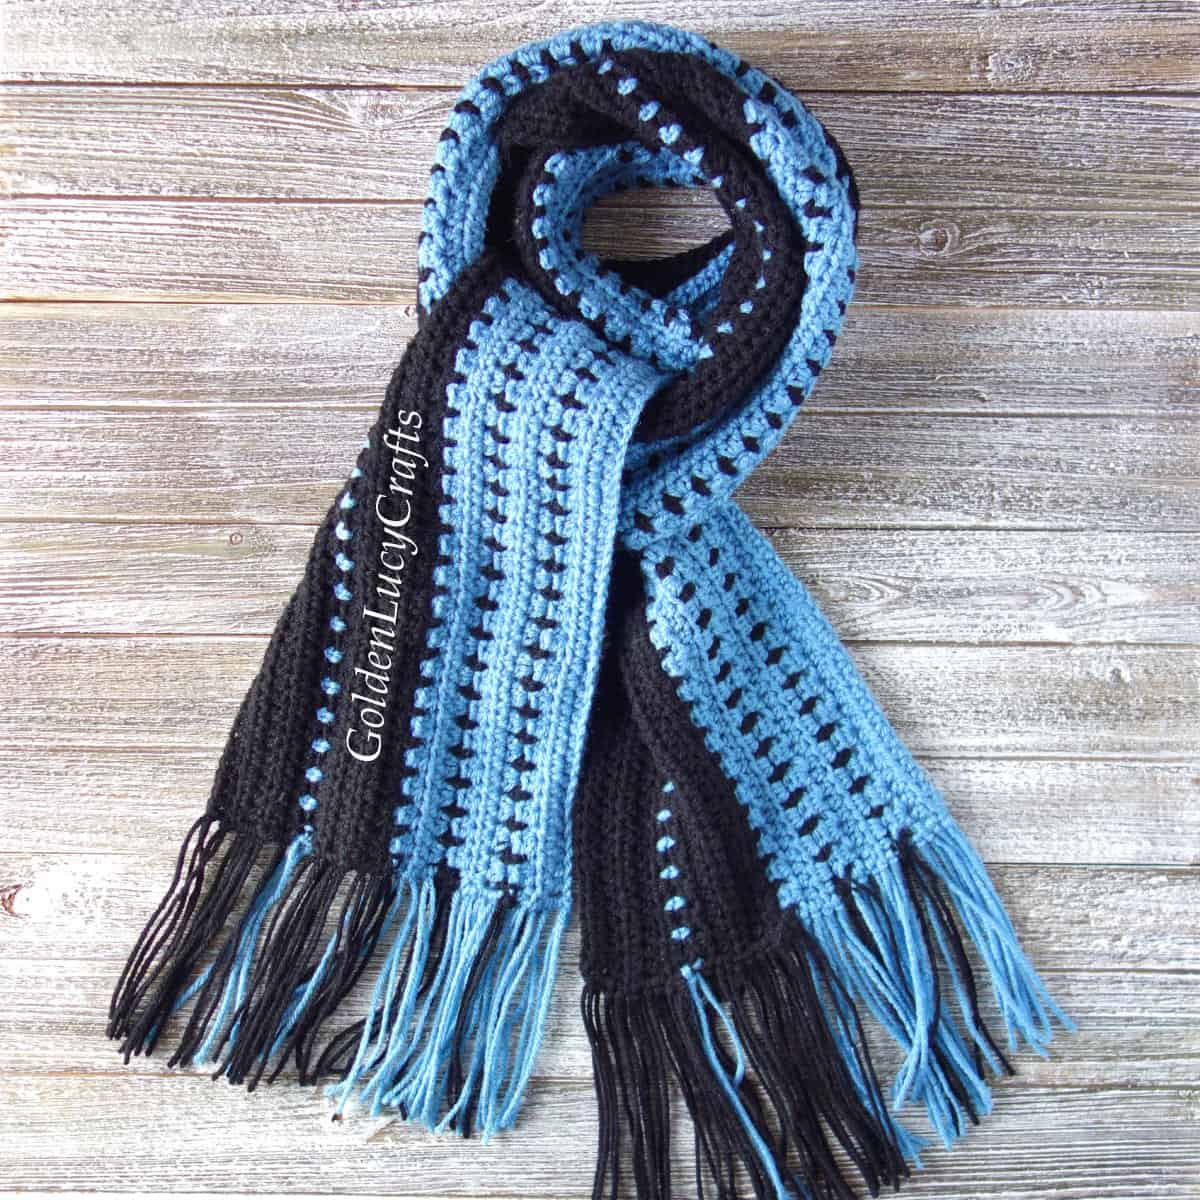 Crochet scarf for men in blue and black colors.